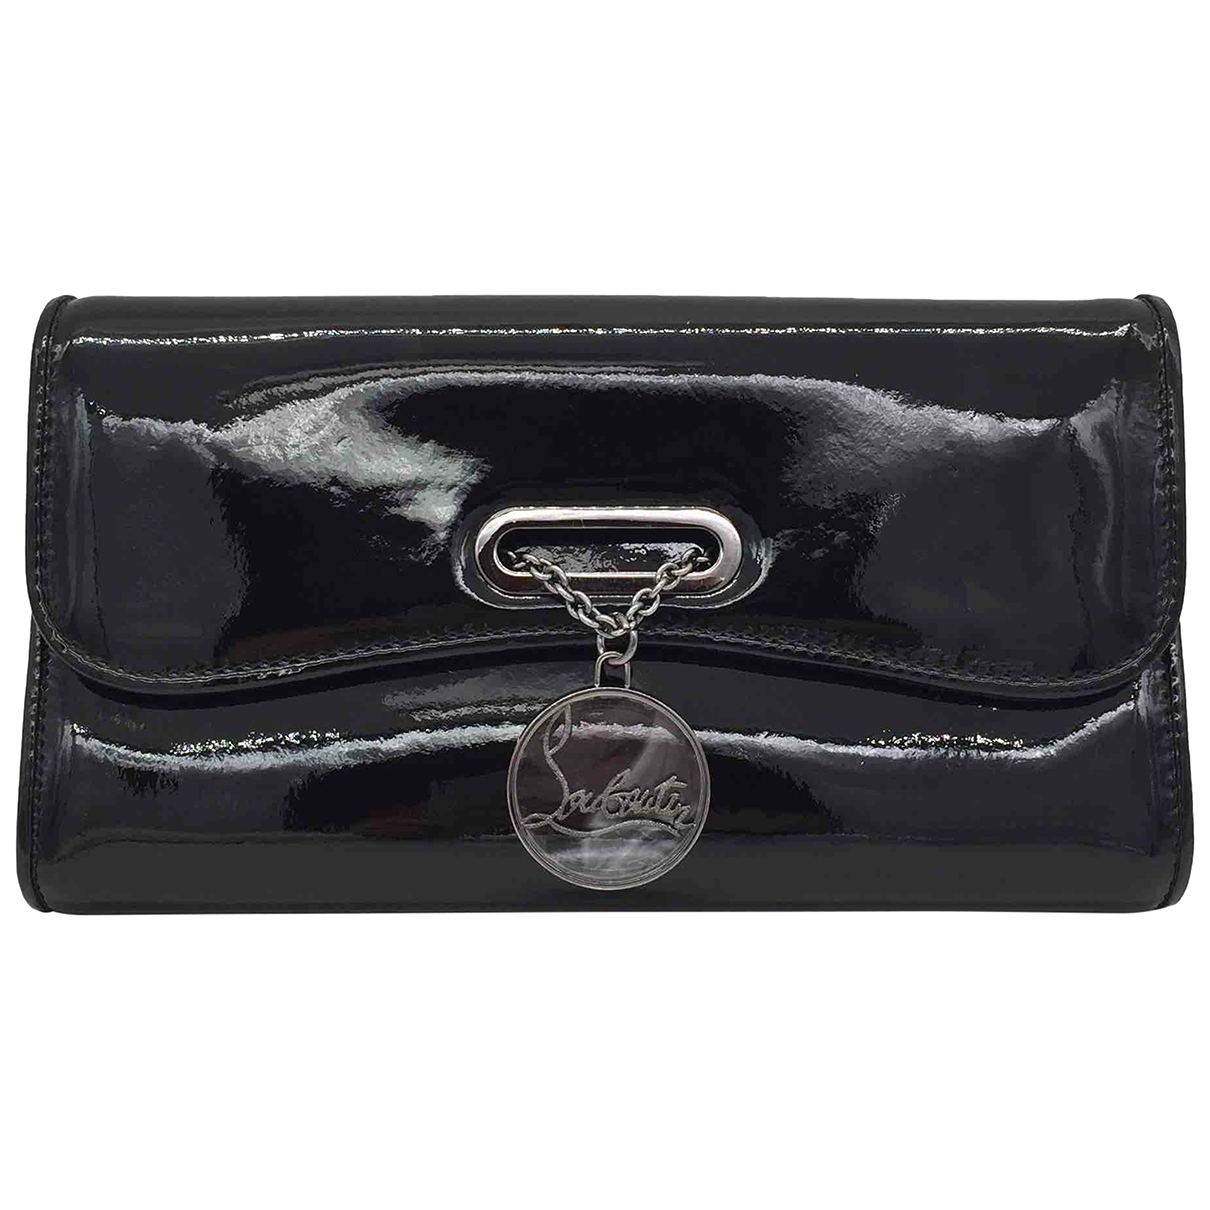 Christian Louboutin Riviera Clutch in  Schwarz Lackleder